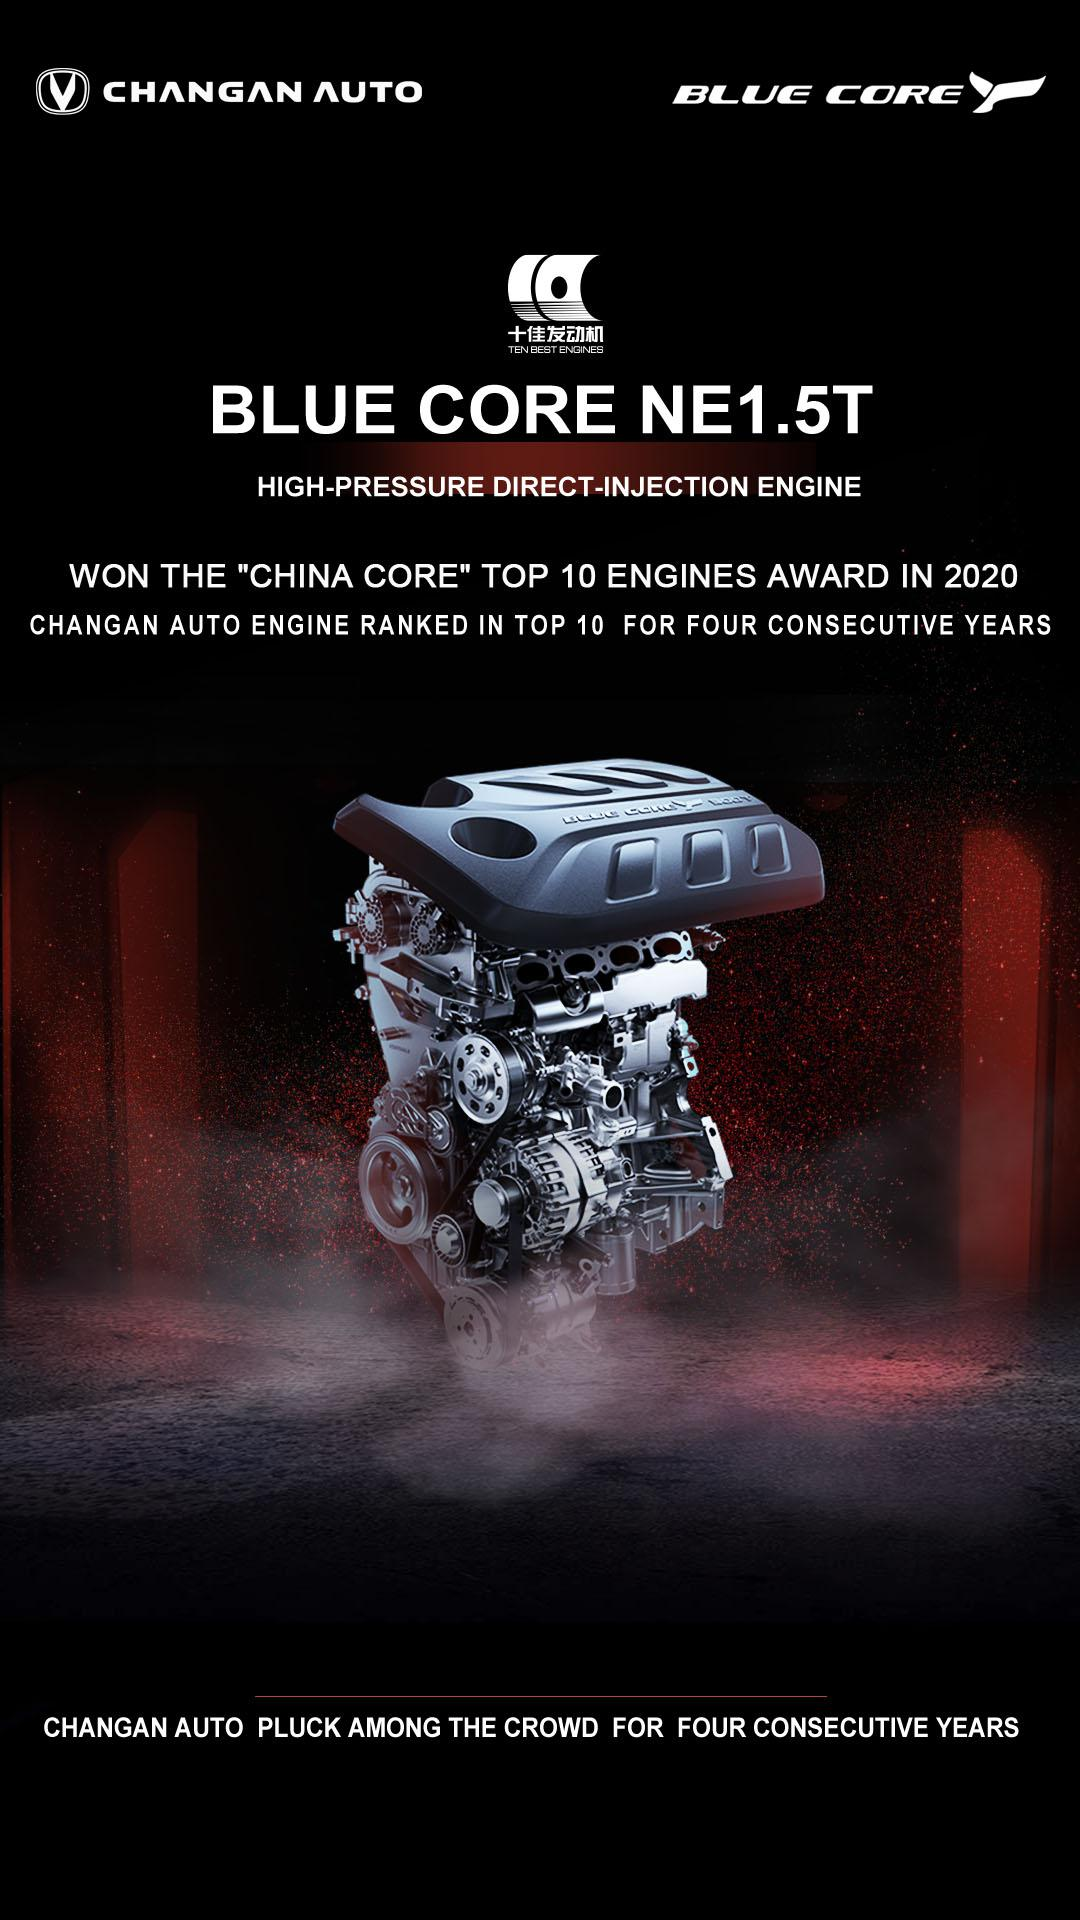 Changan Blue Core Engine Sets Guinness World Record 2